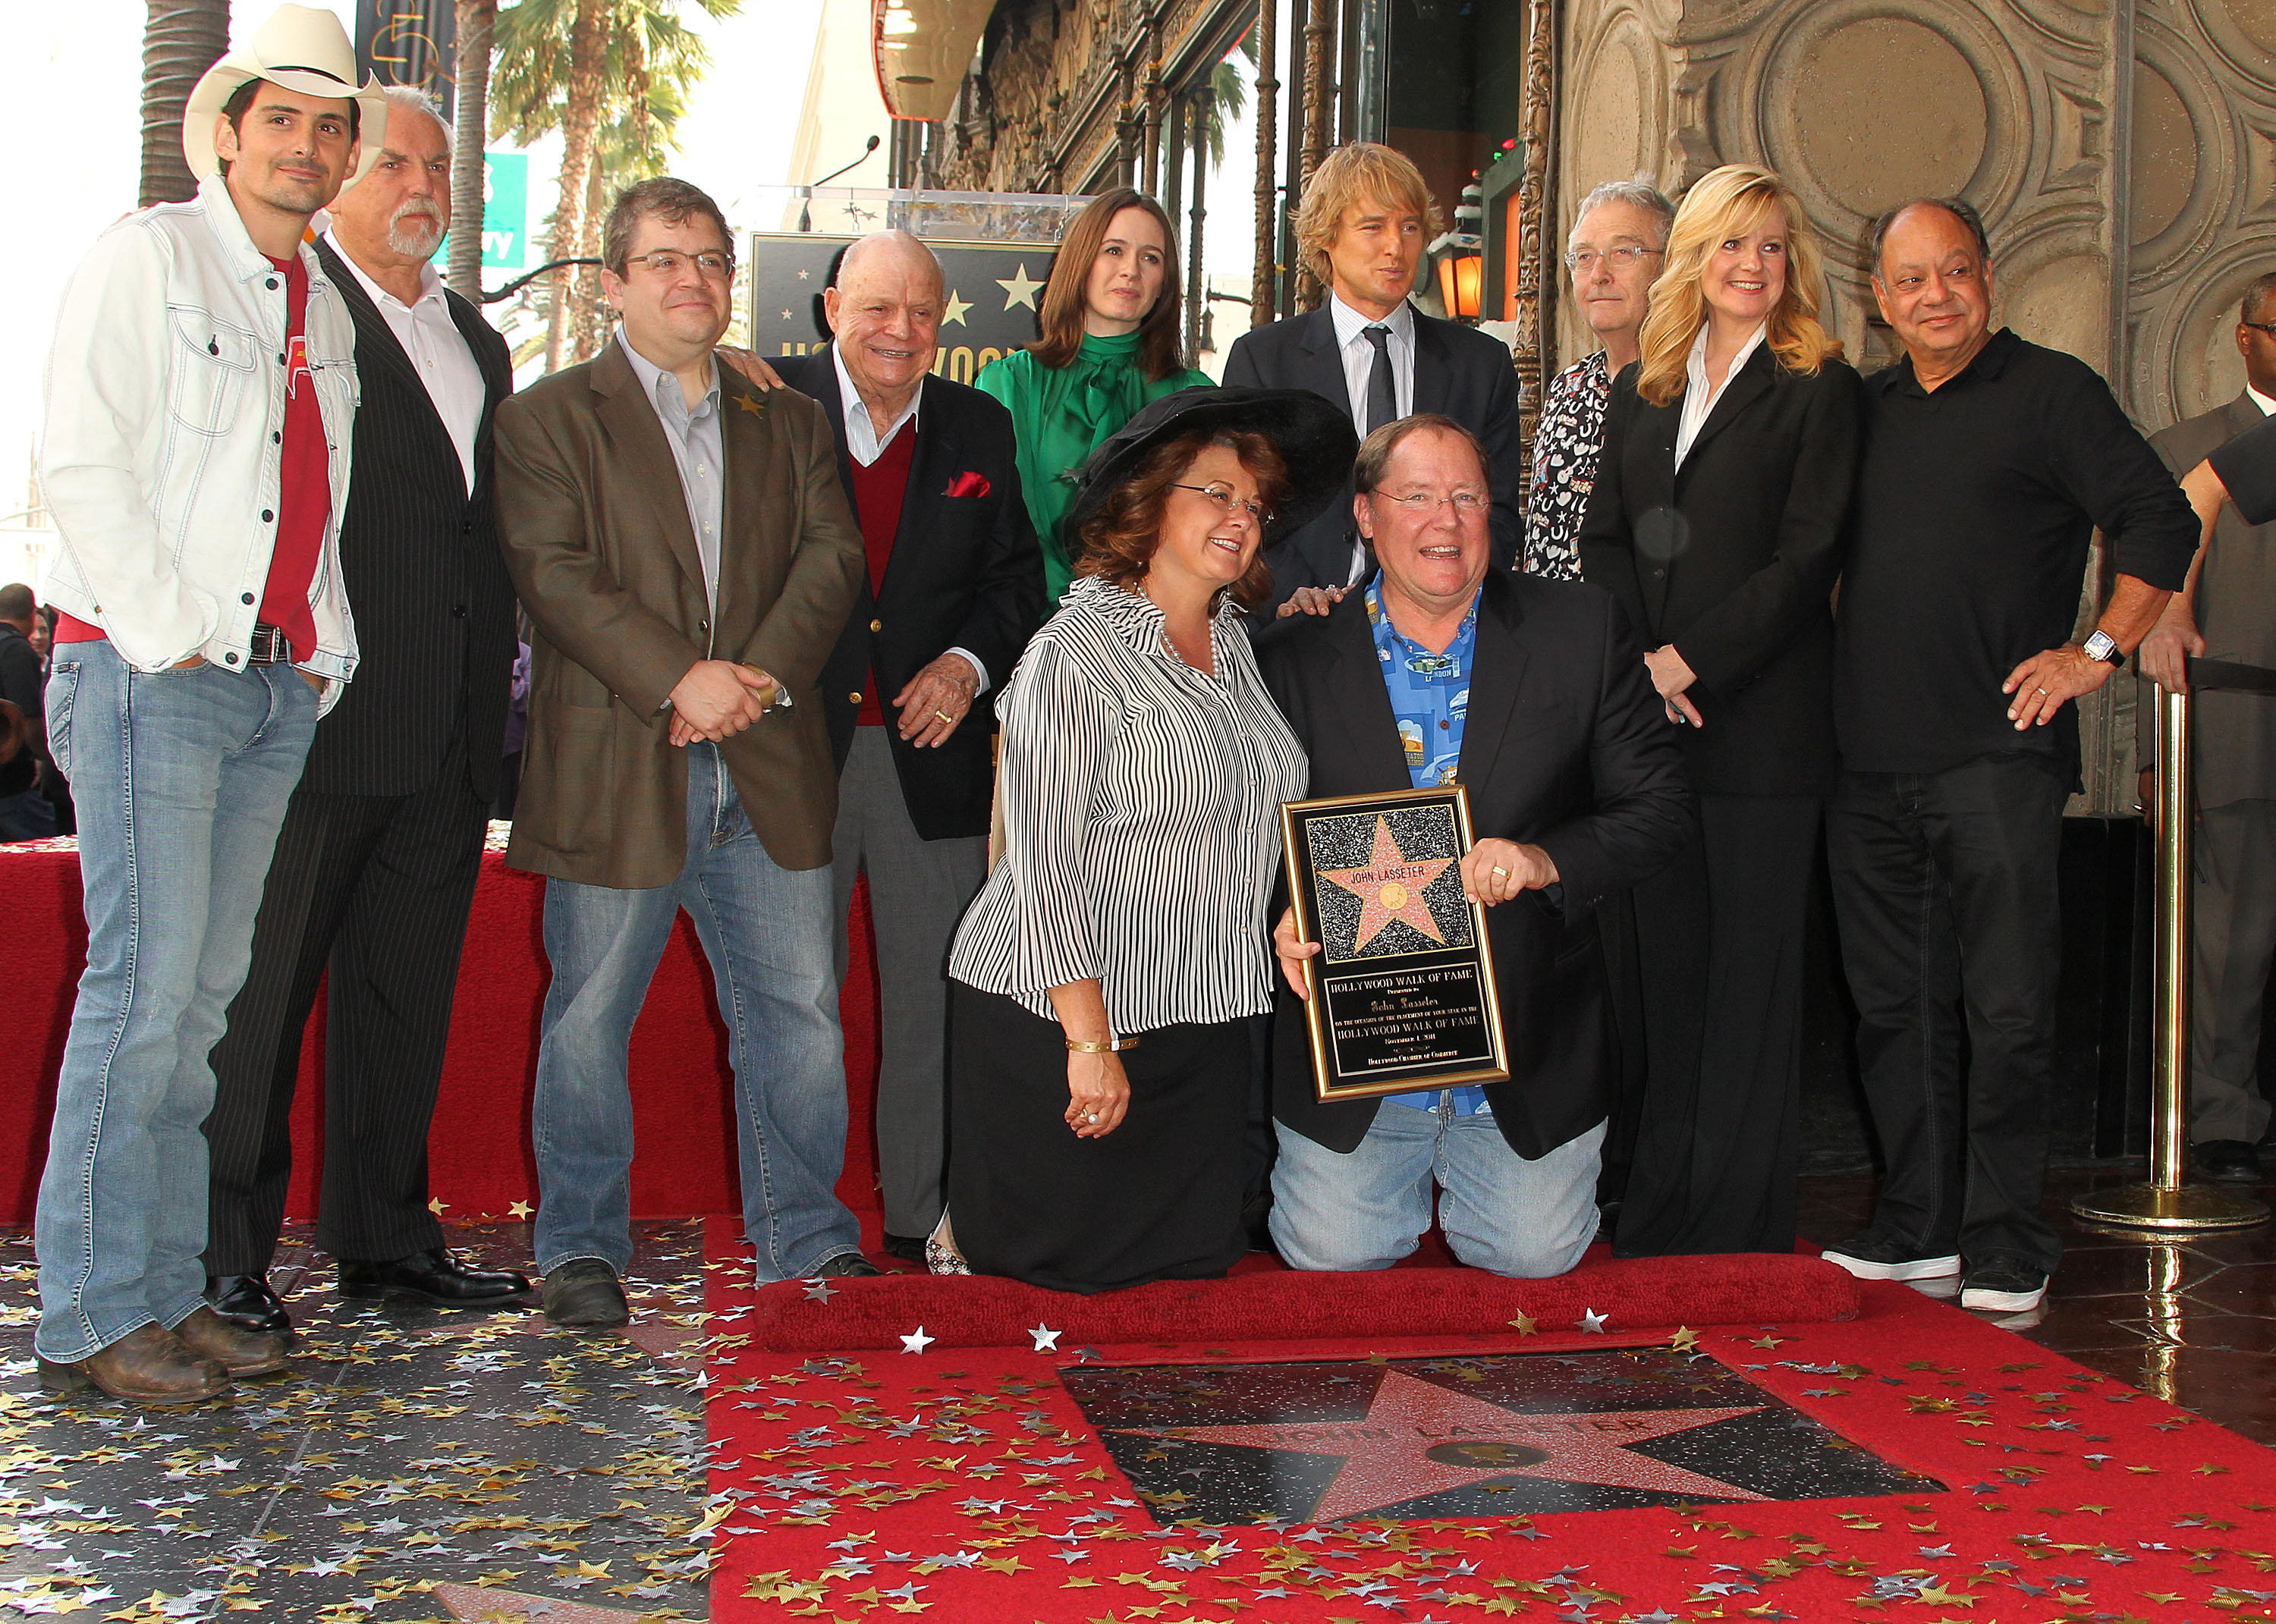 The author (third from left) and Rickles stand next to one another during the installation ceremony for director John Lasseter's star on the Hollywood Walk of Fame on Nov. 1, 2011 in Hollywood, California.